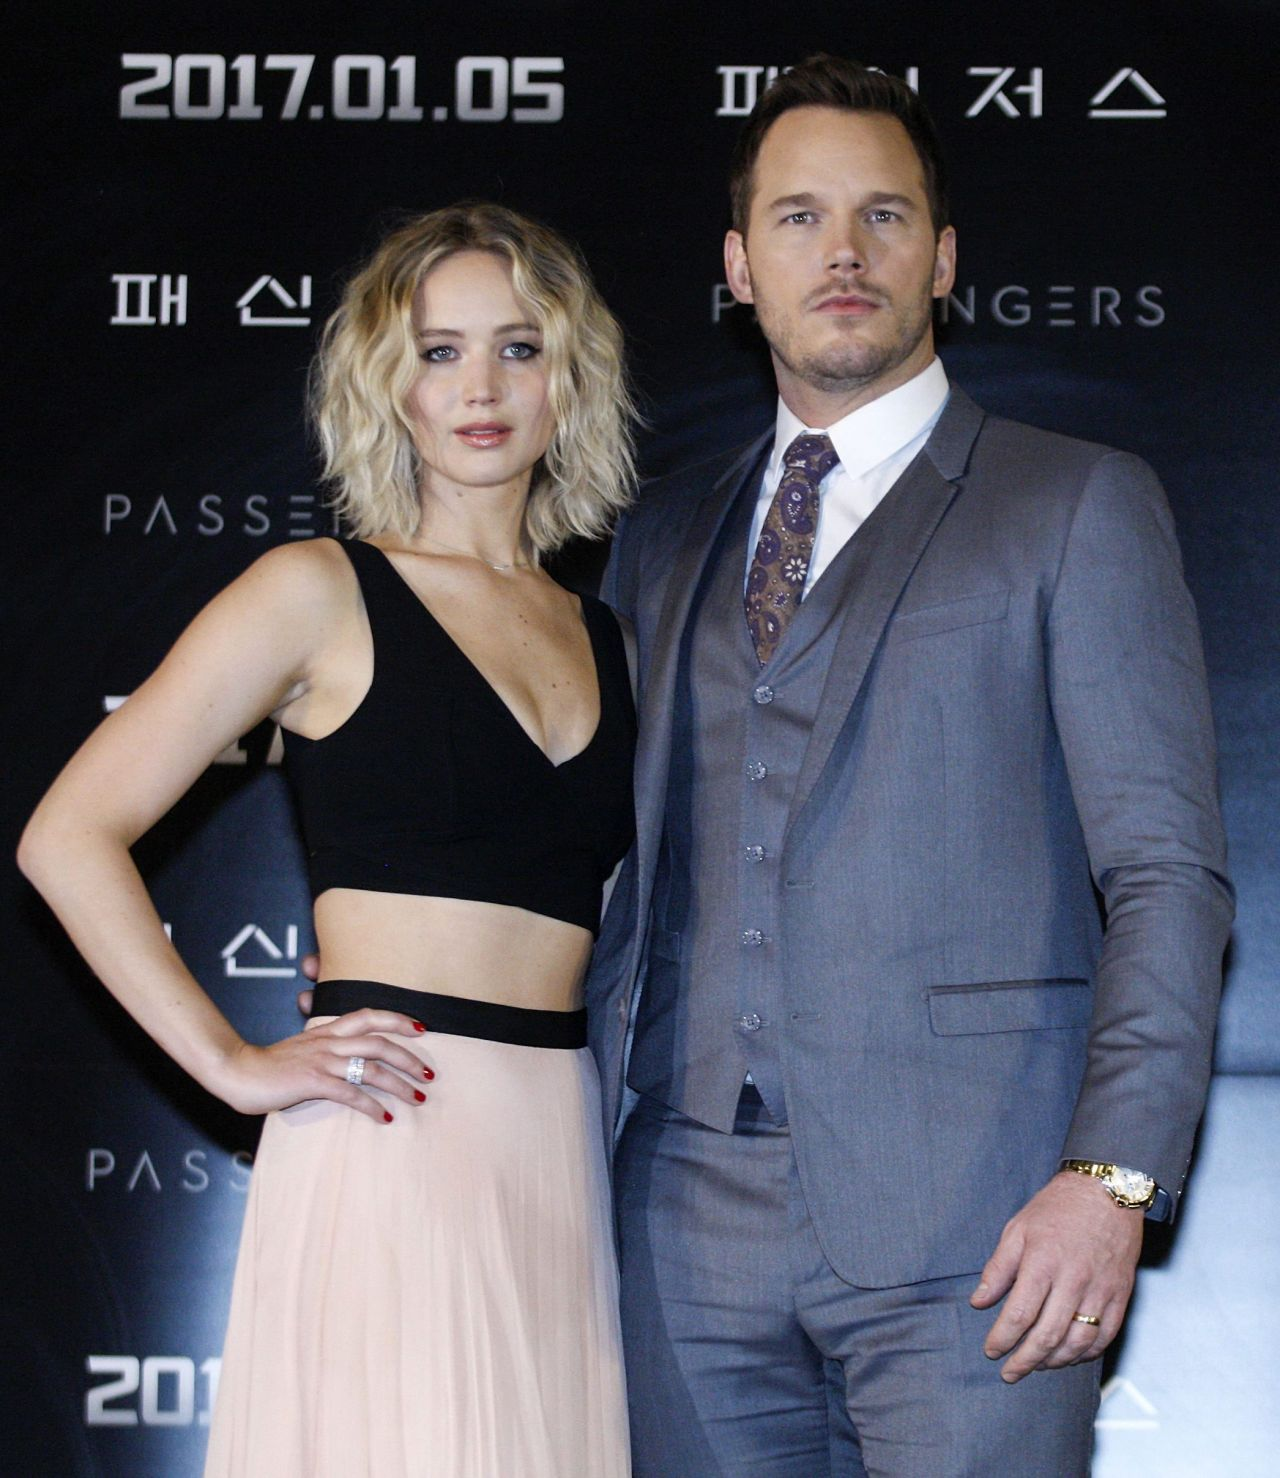 'Passengers' Press Conference In Seoul